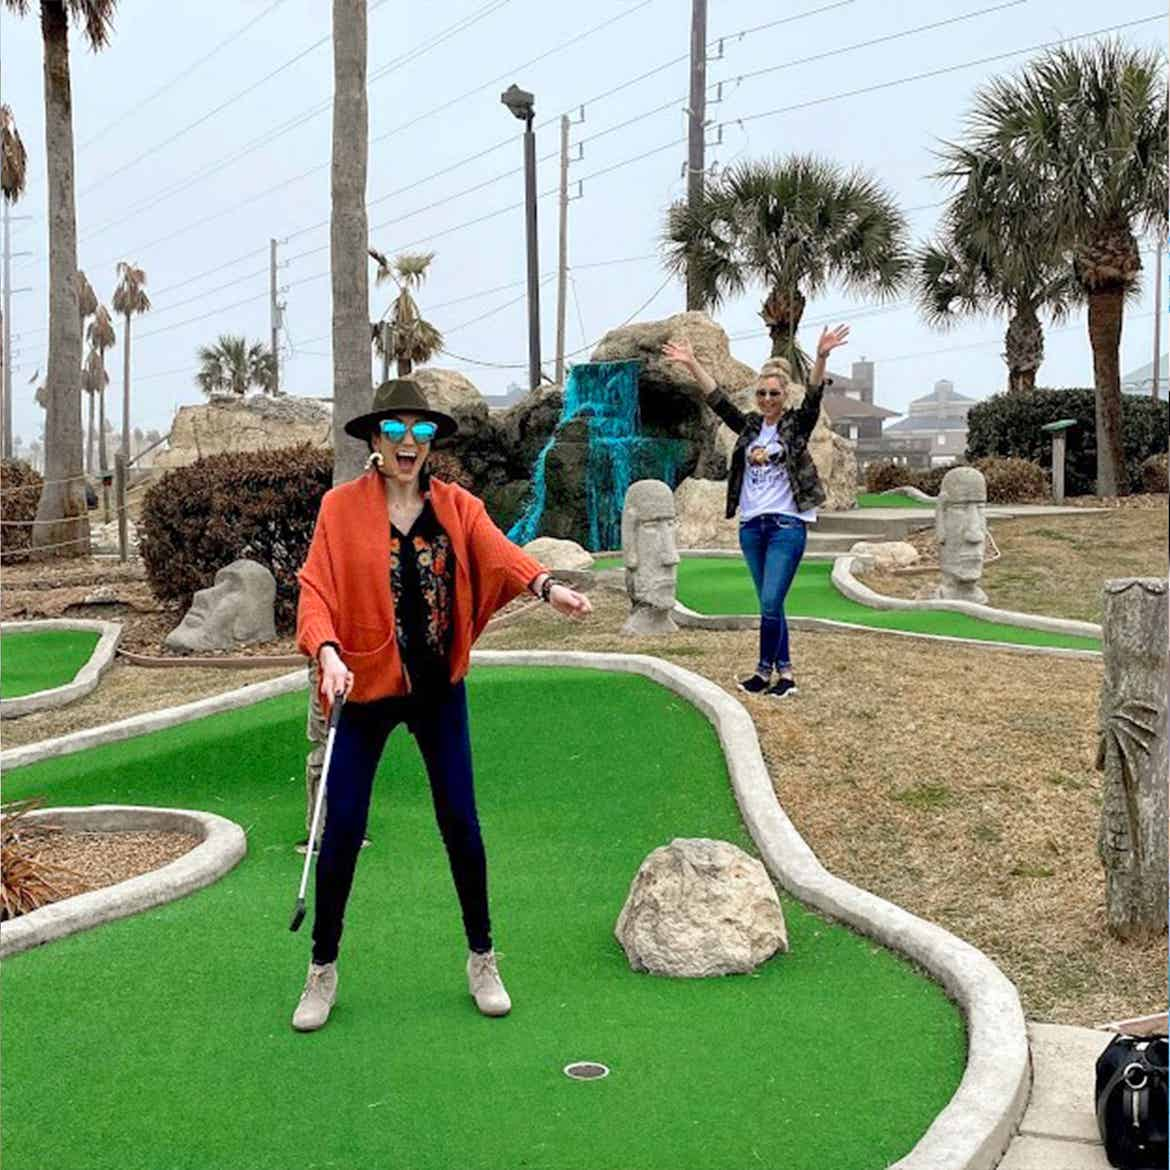 Featured Contributor, Amanda Nall (right) plays mini-golf with her friend at our Galveston Beach Resort in Galveston, Tx.